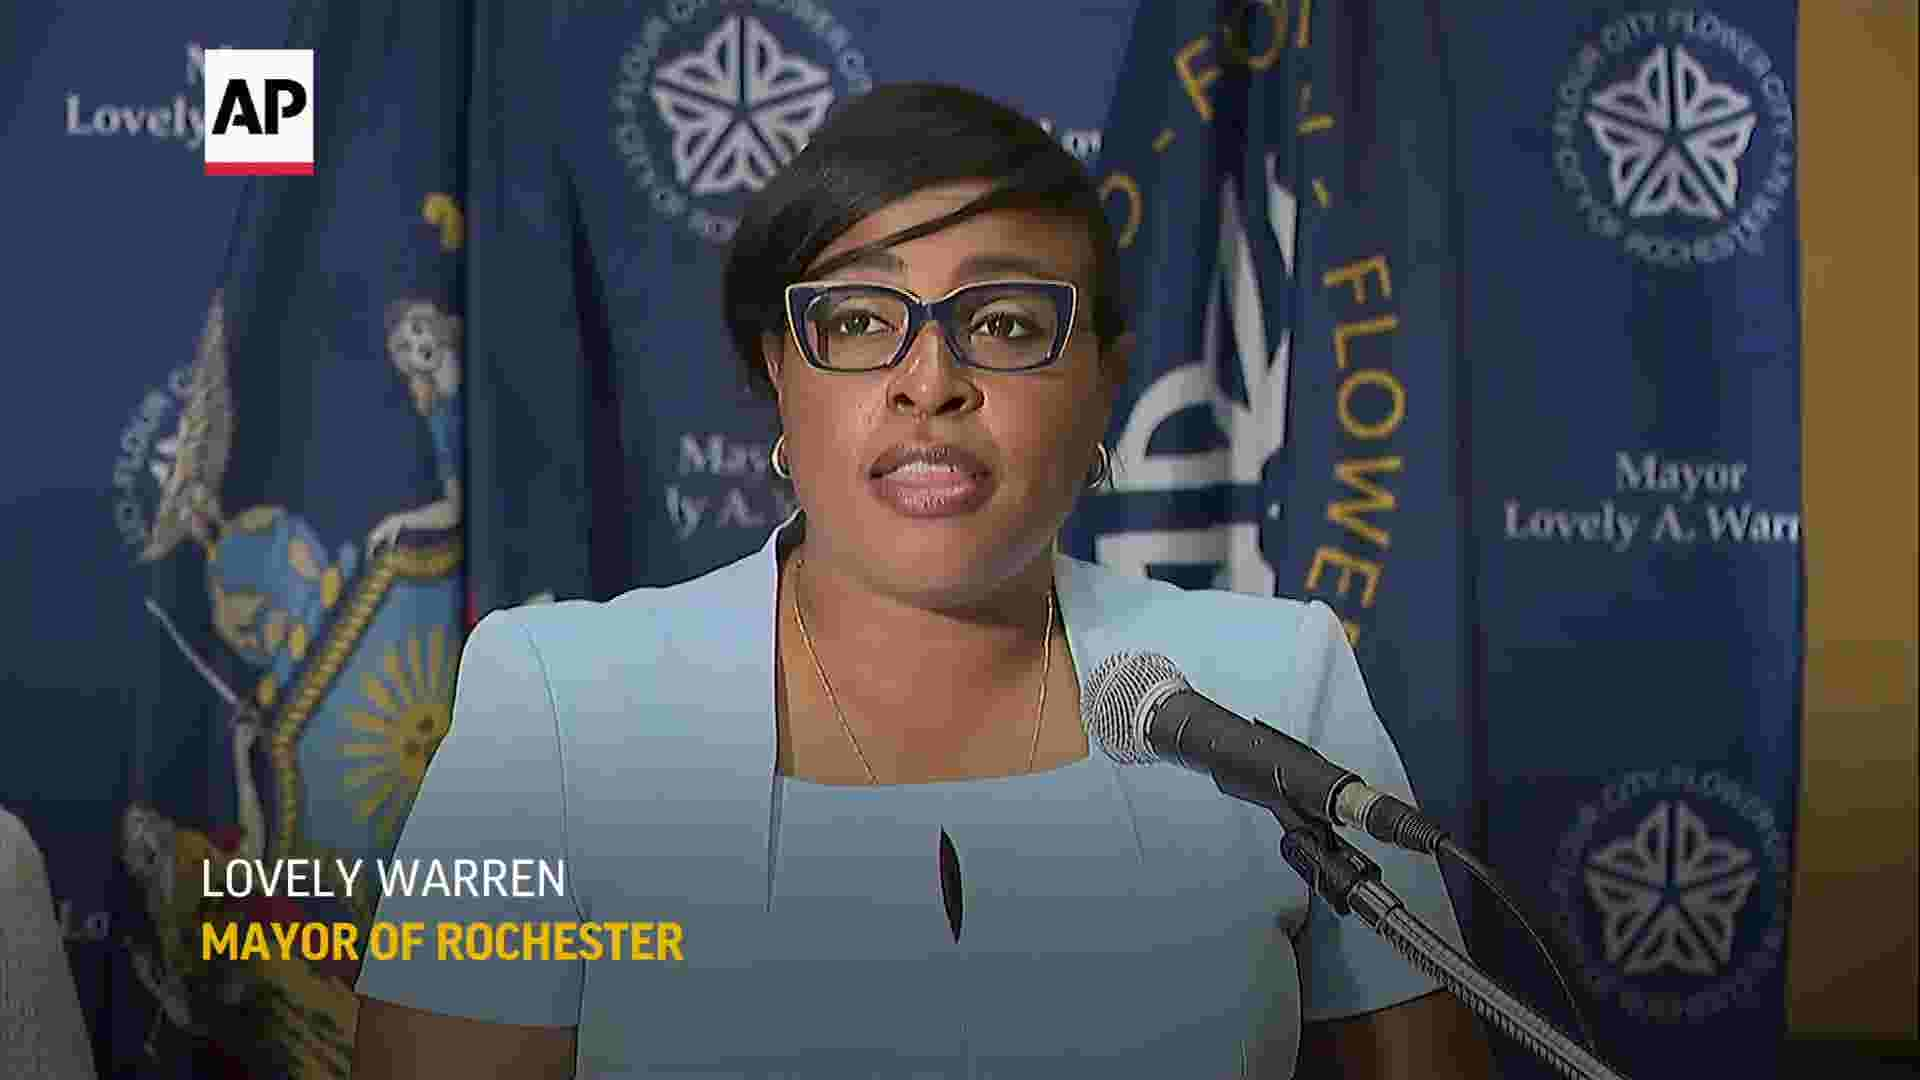 Rochester Mayor appoints new interim police chief